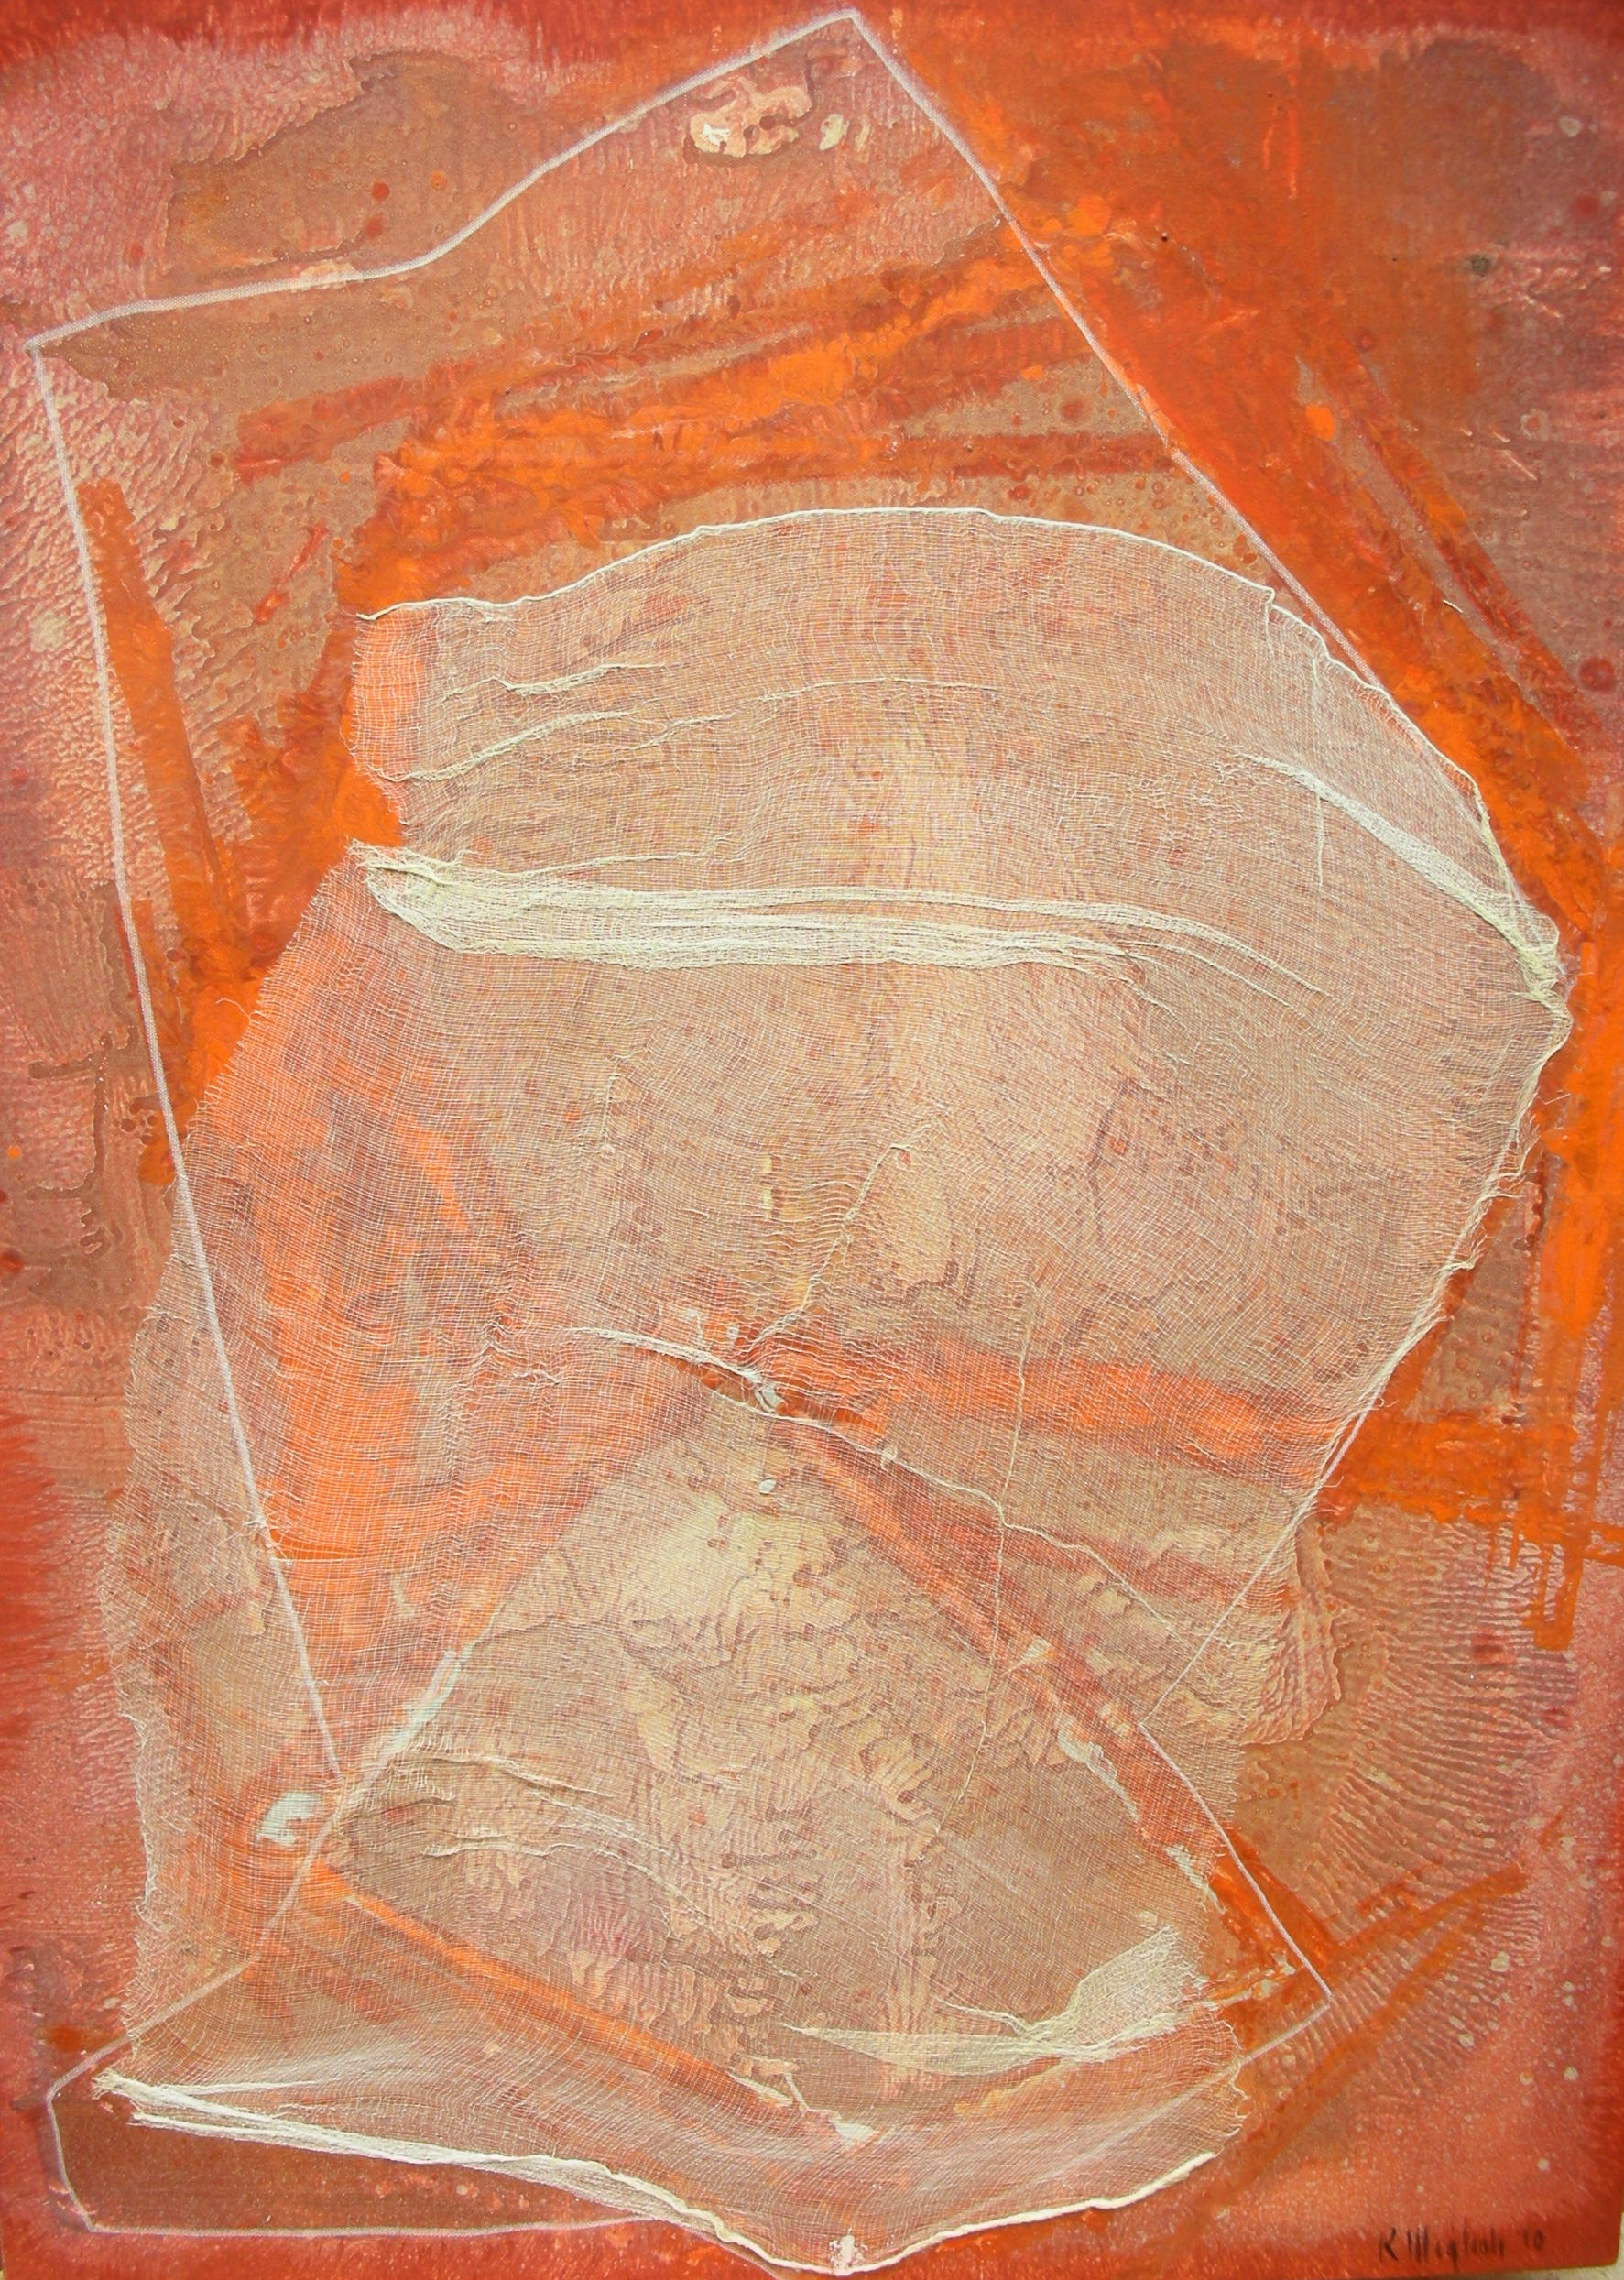 Concept, 2010 40 x 30 inches